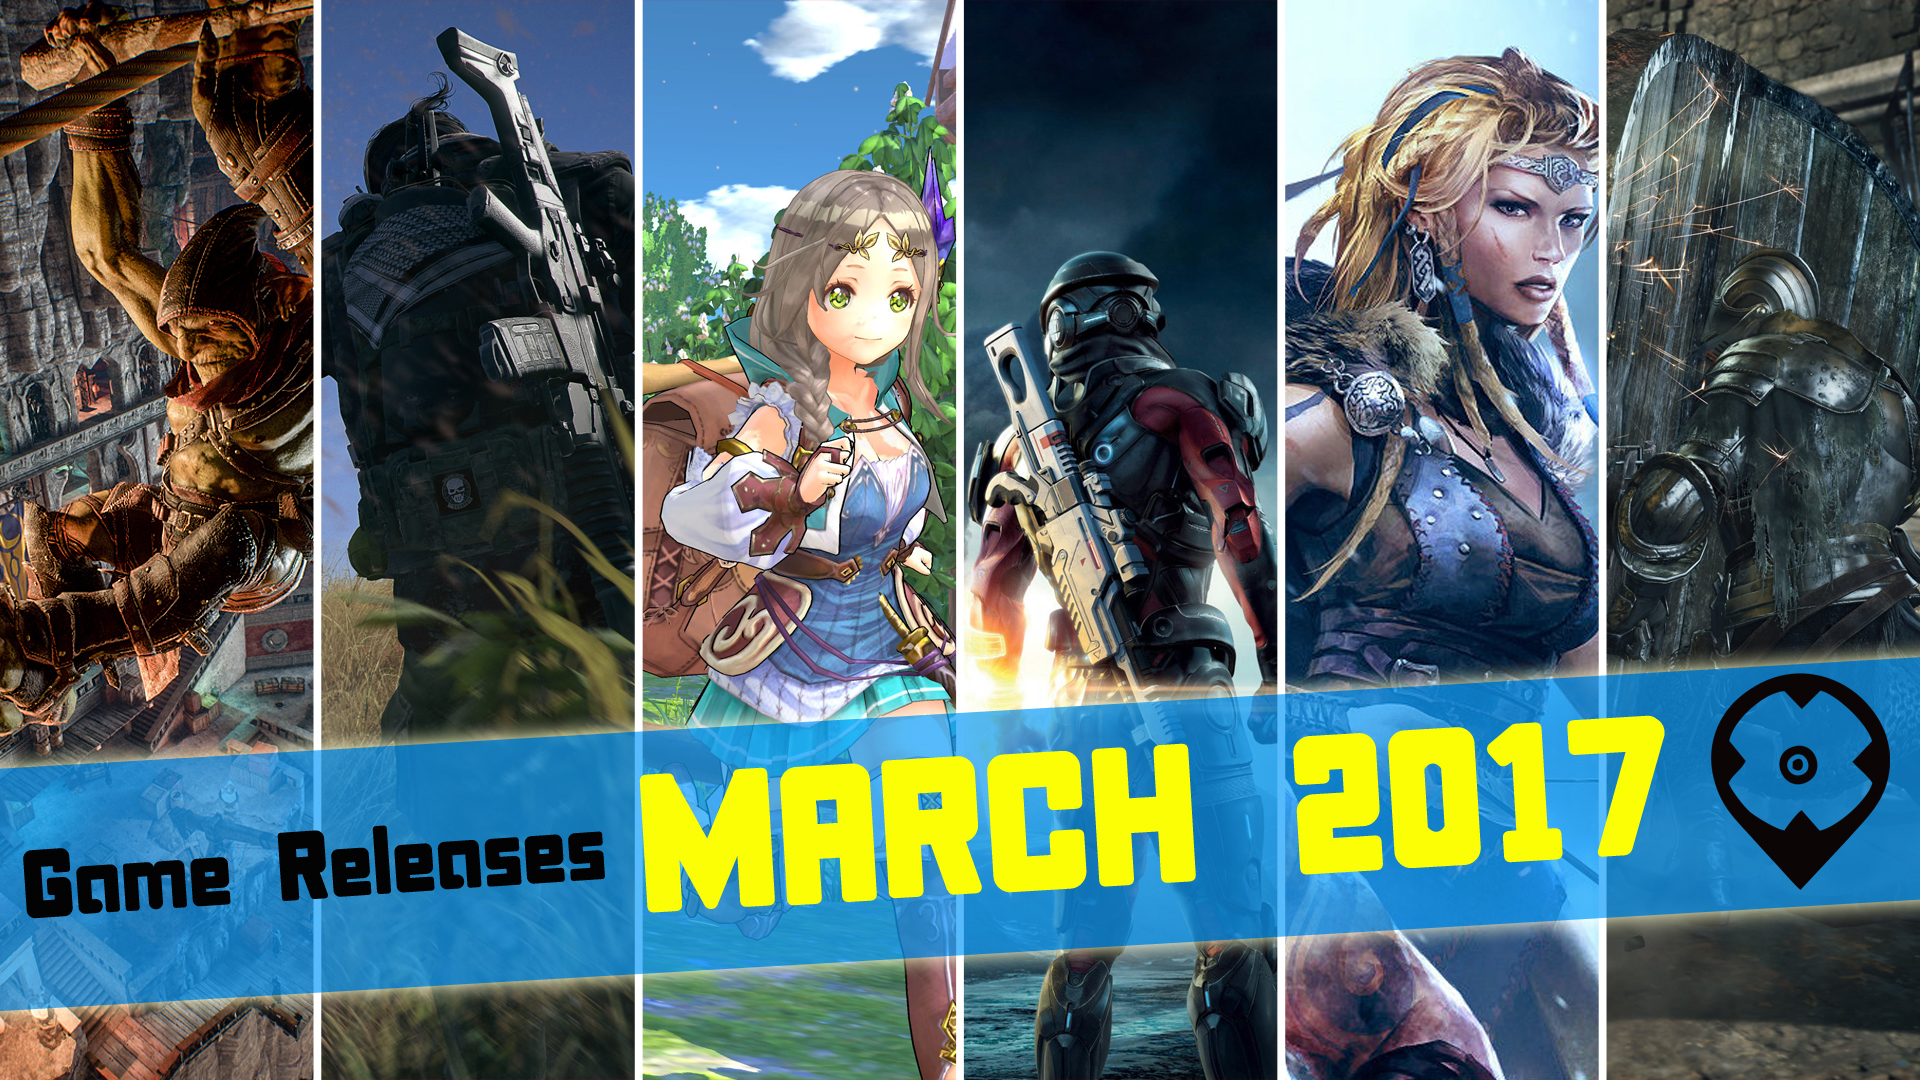 March 2017 Game Releases